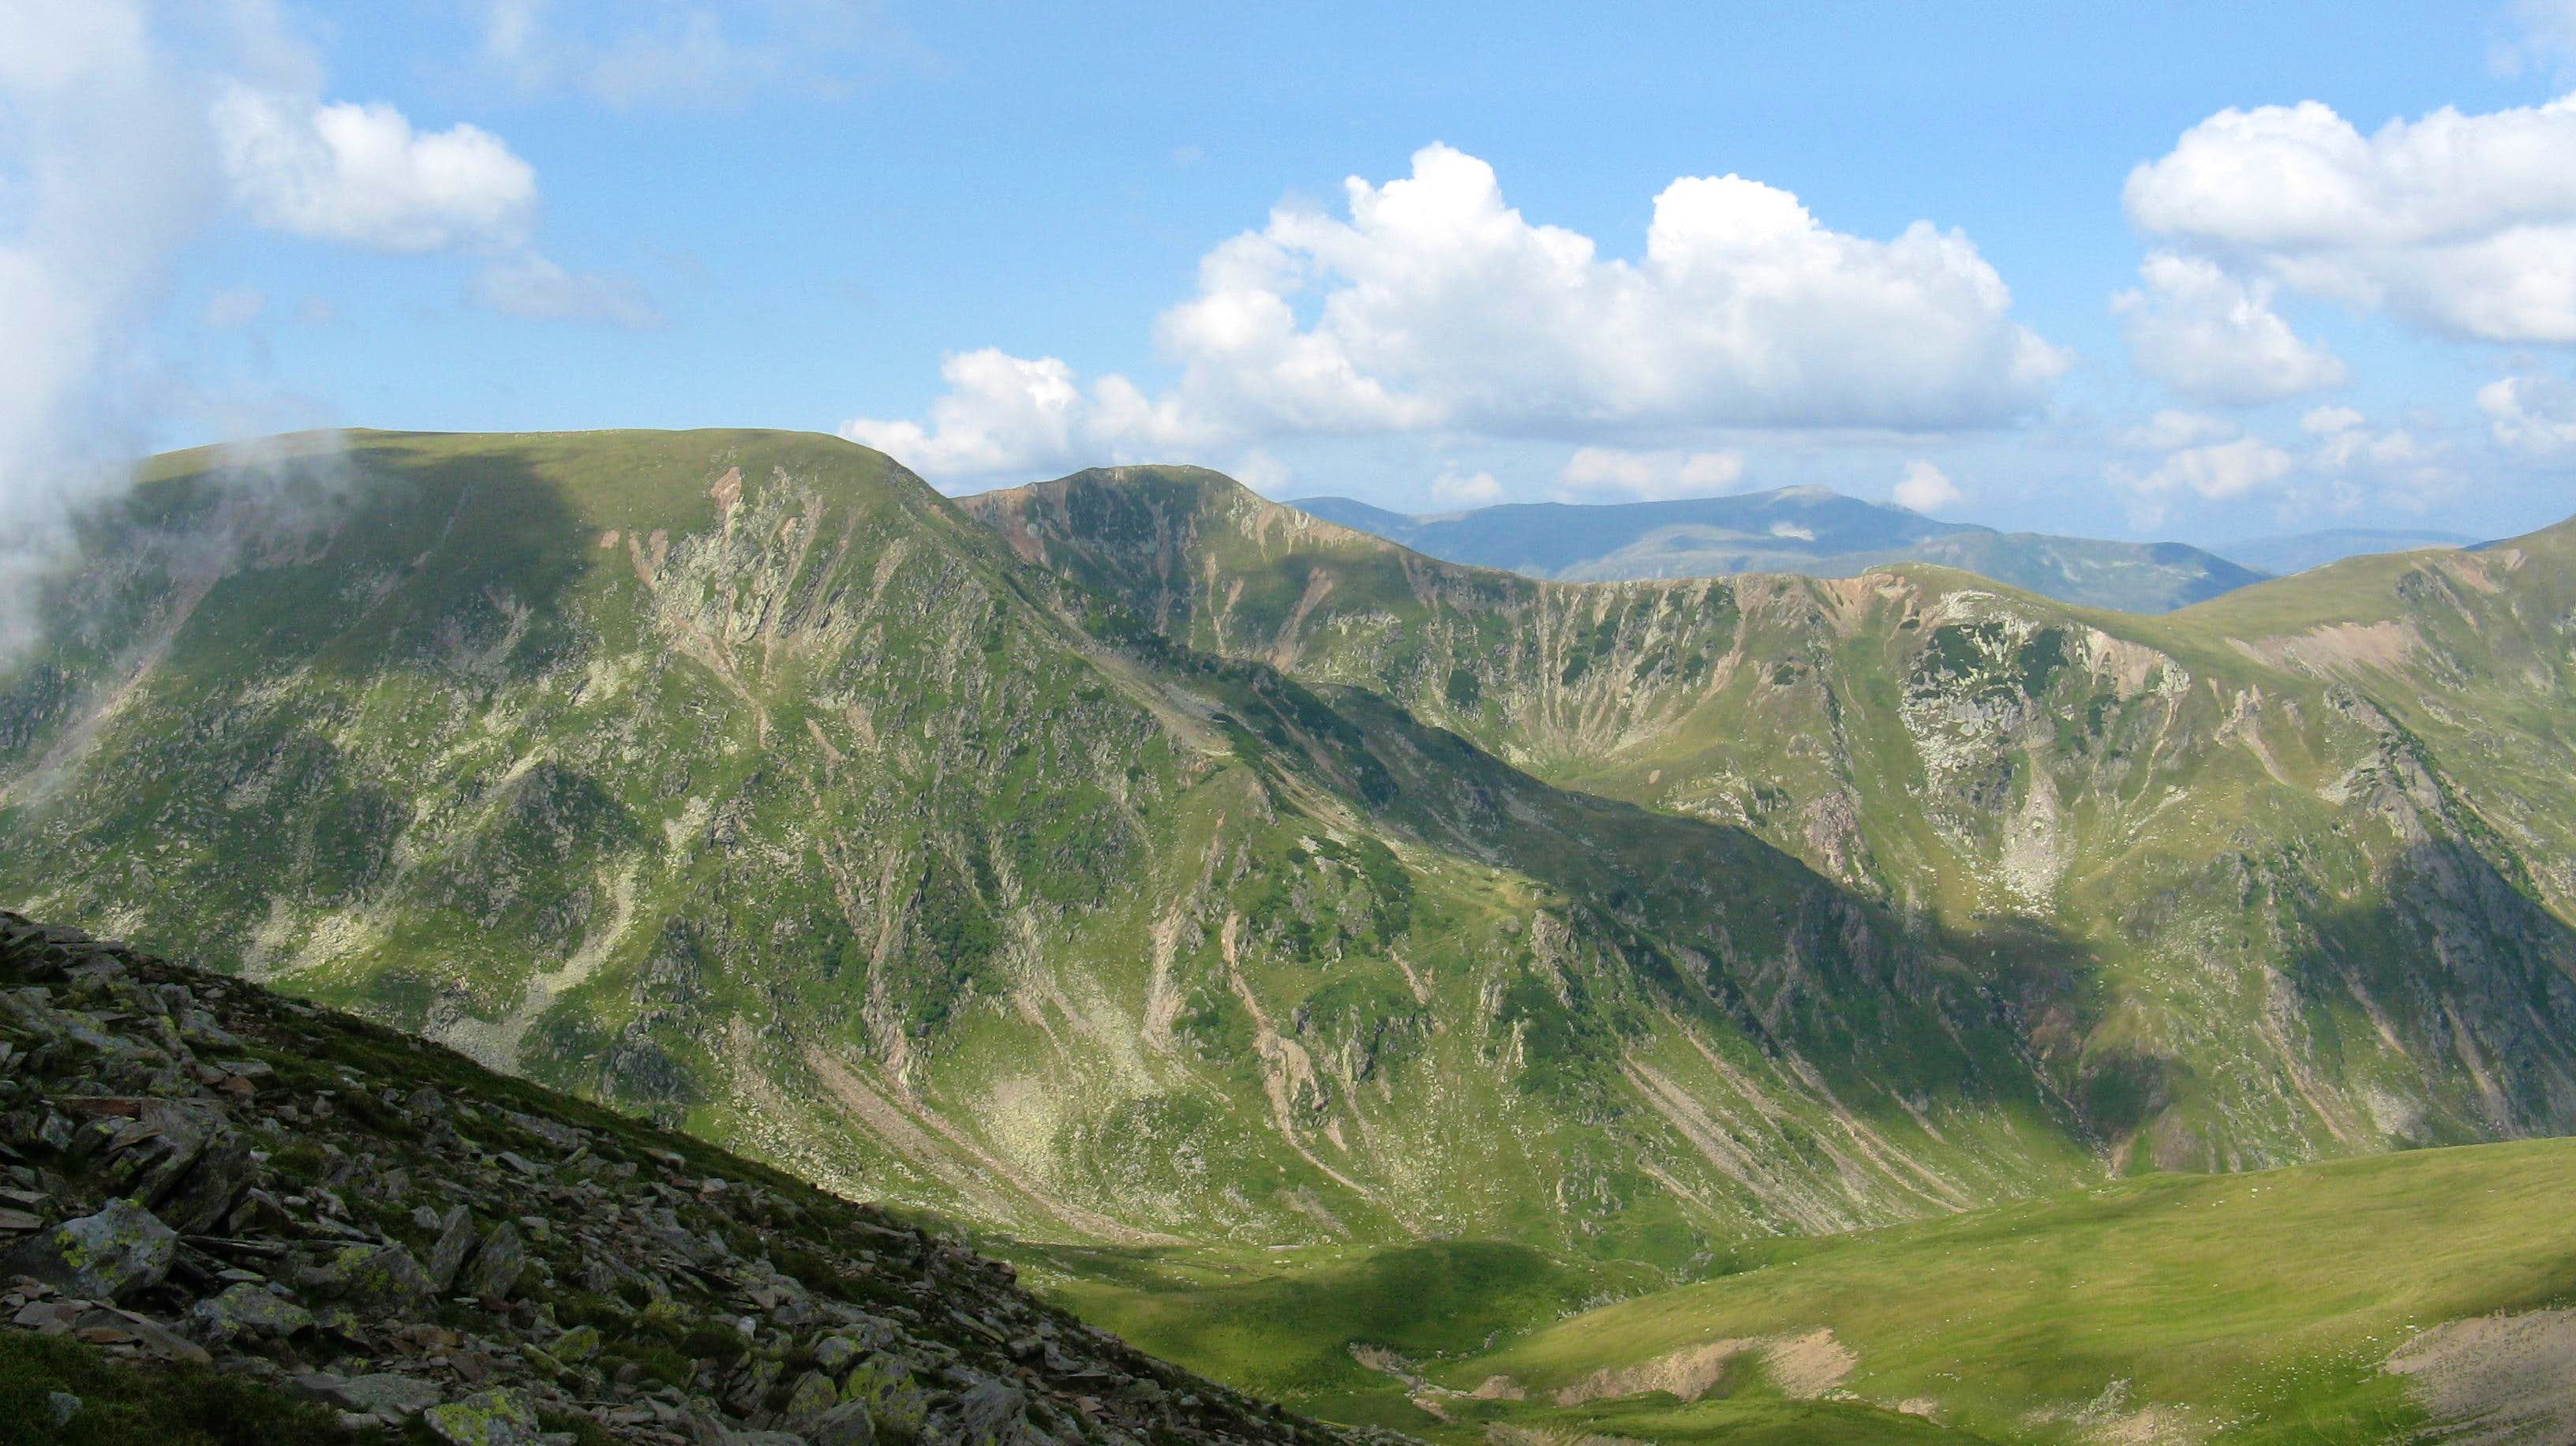 Godeanu Mountains